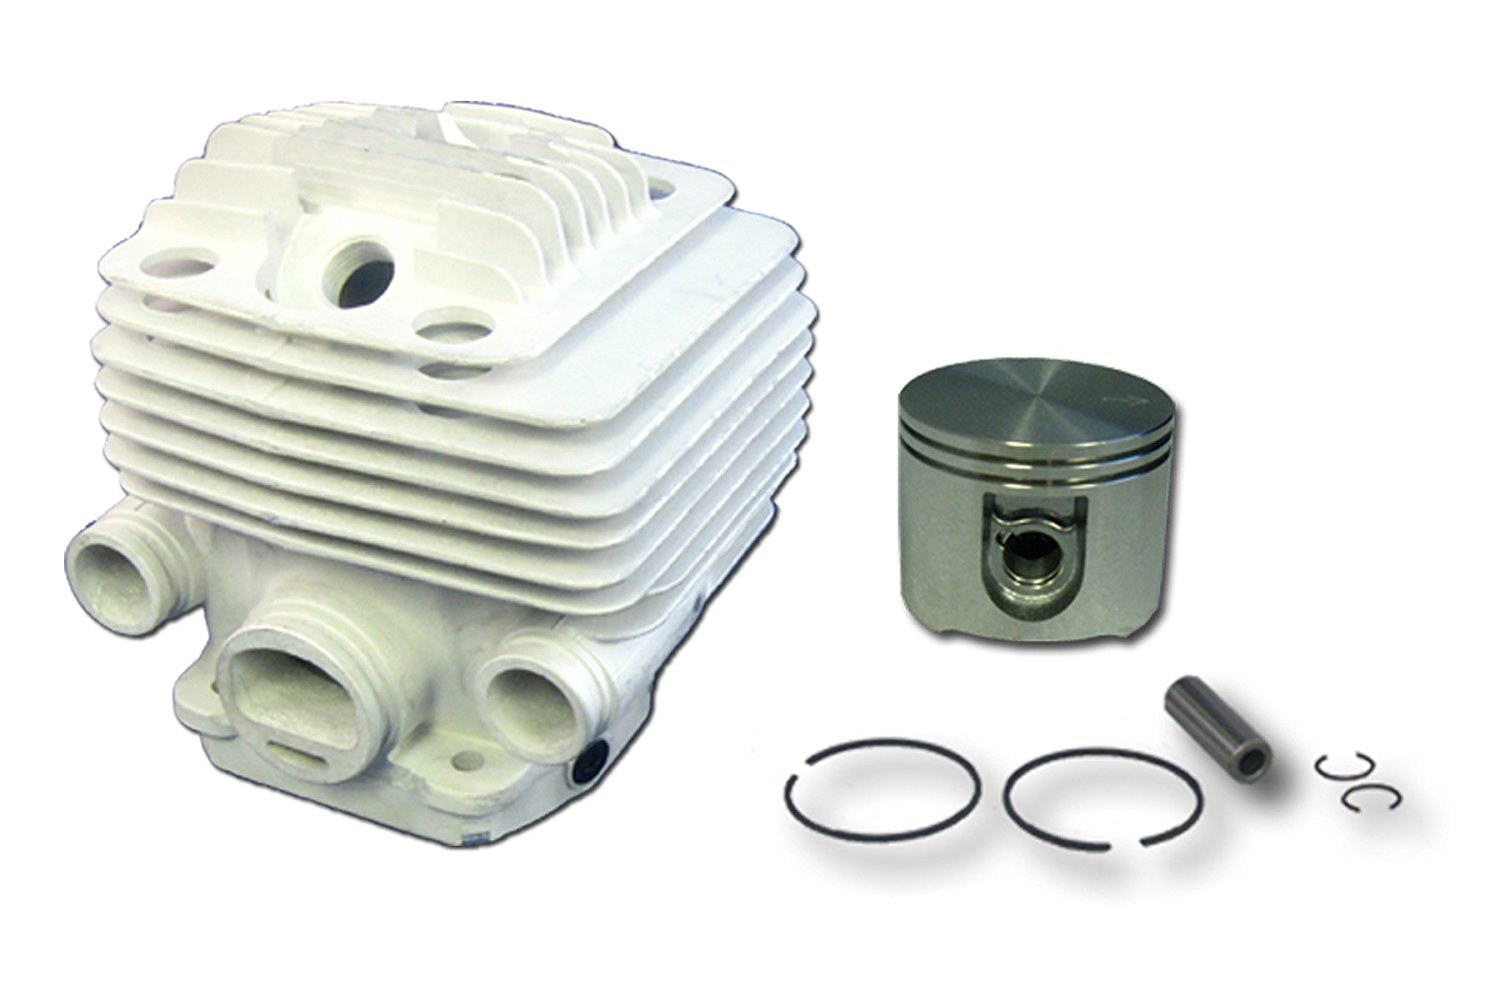 Stihl TS700 TS800 Cylinder Piston & Rings Replacement Concrete Saw Cut Saw Chop Saw by